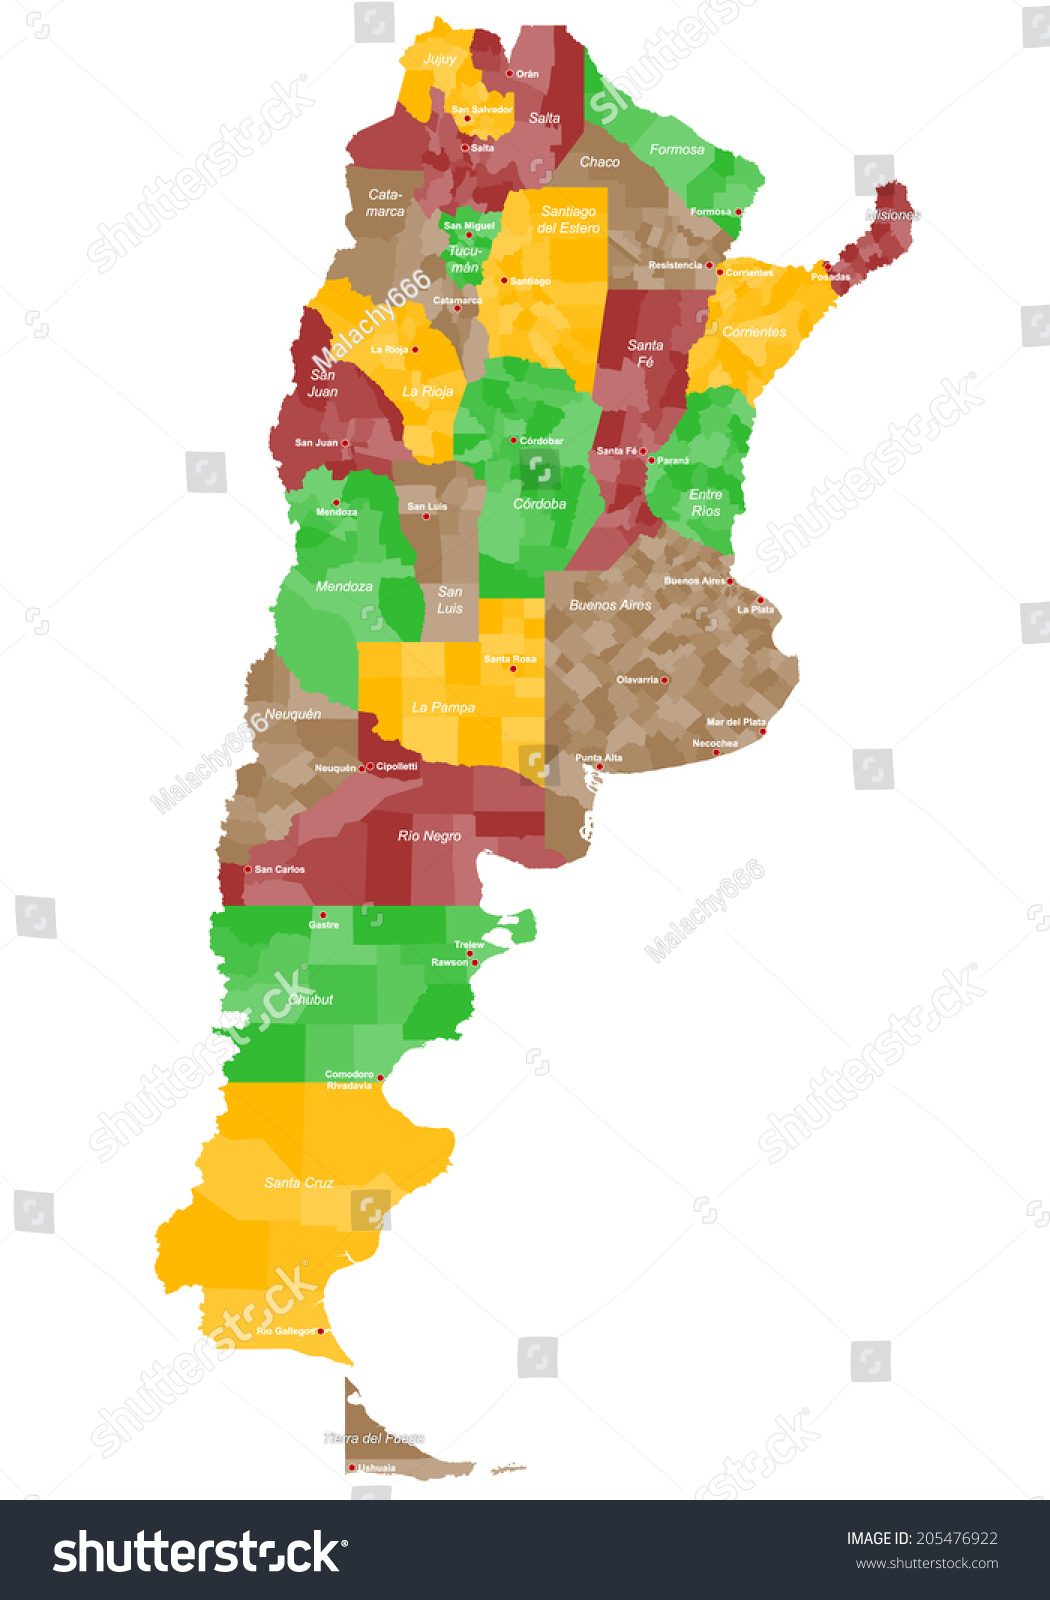 Large Detailed Map Argentina All Provinces Stock Vector - Argentina map provinces